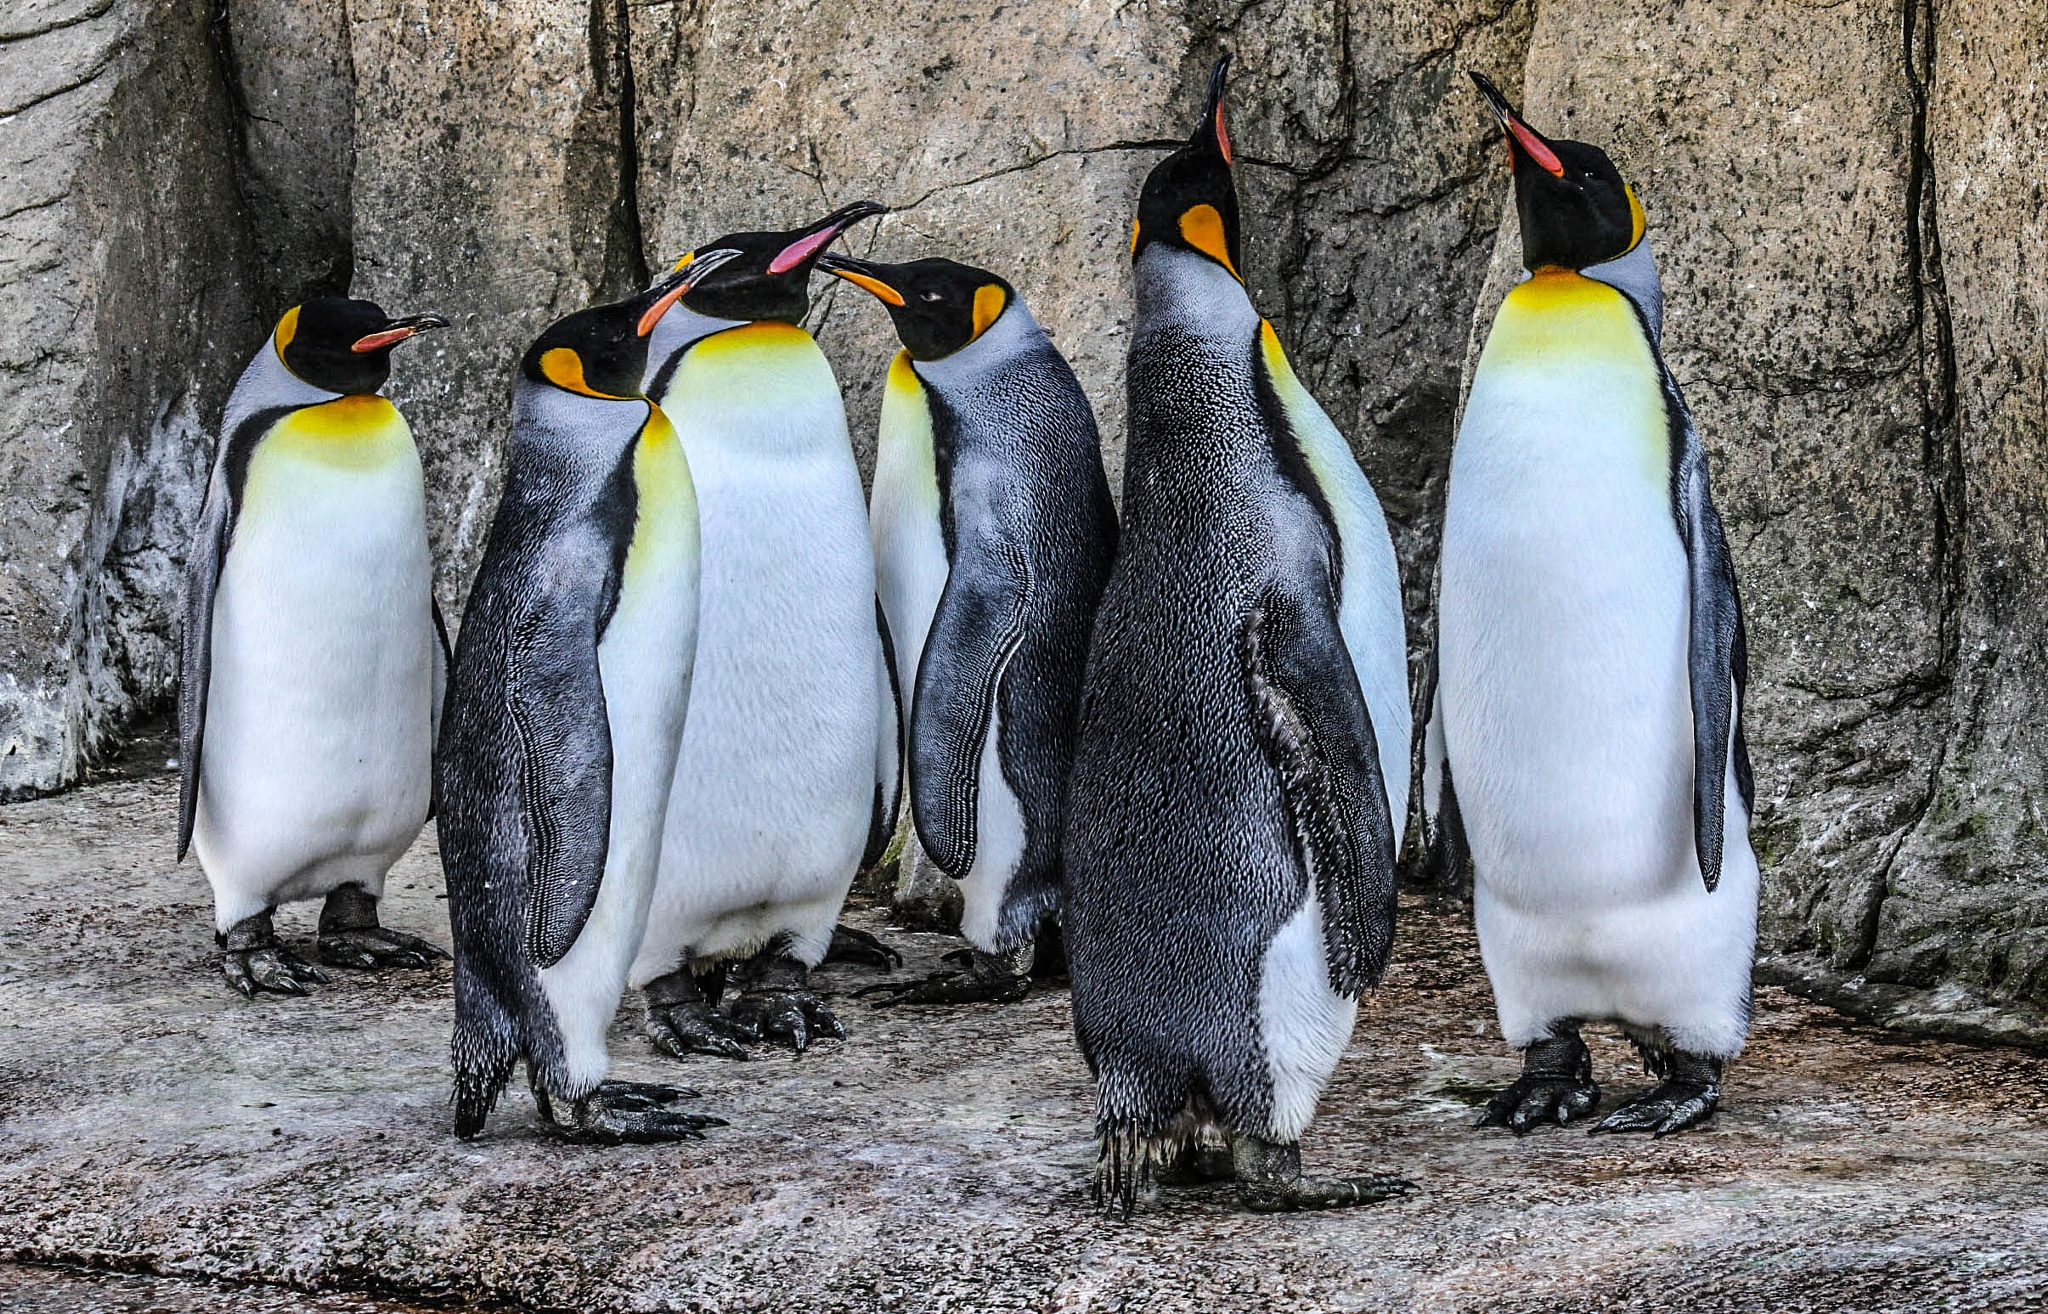 Gathering of the kings by garry-chisholm1